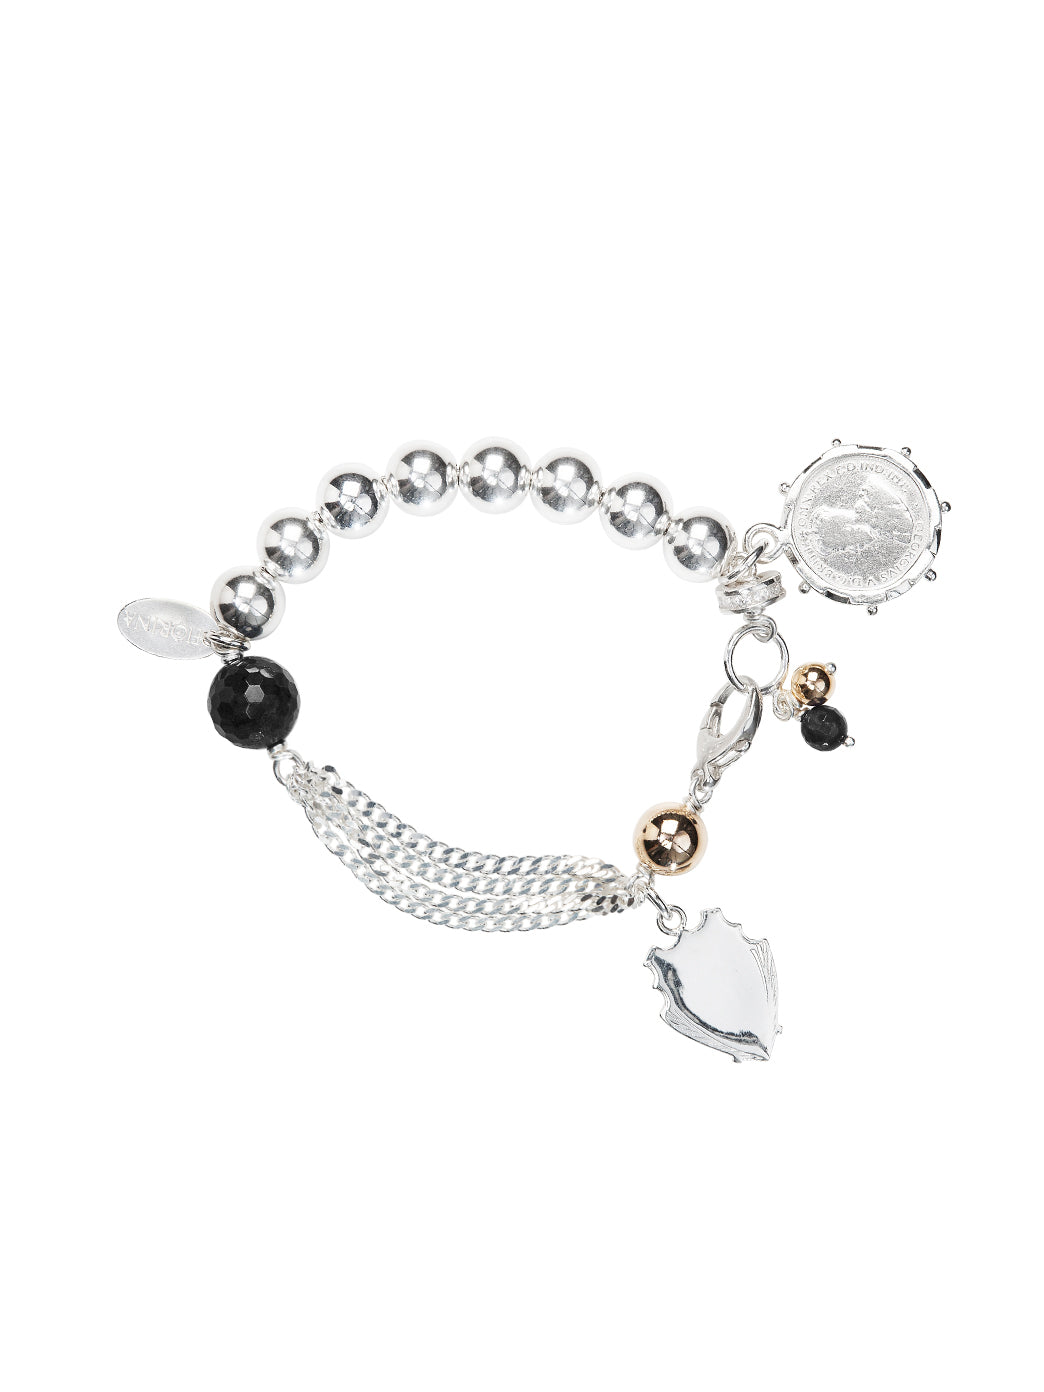 Fiorina Jewellery Monster Simple Komboloy Bracelet Black Onyx